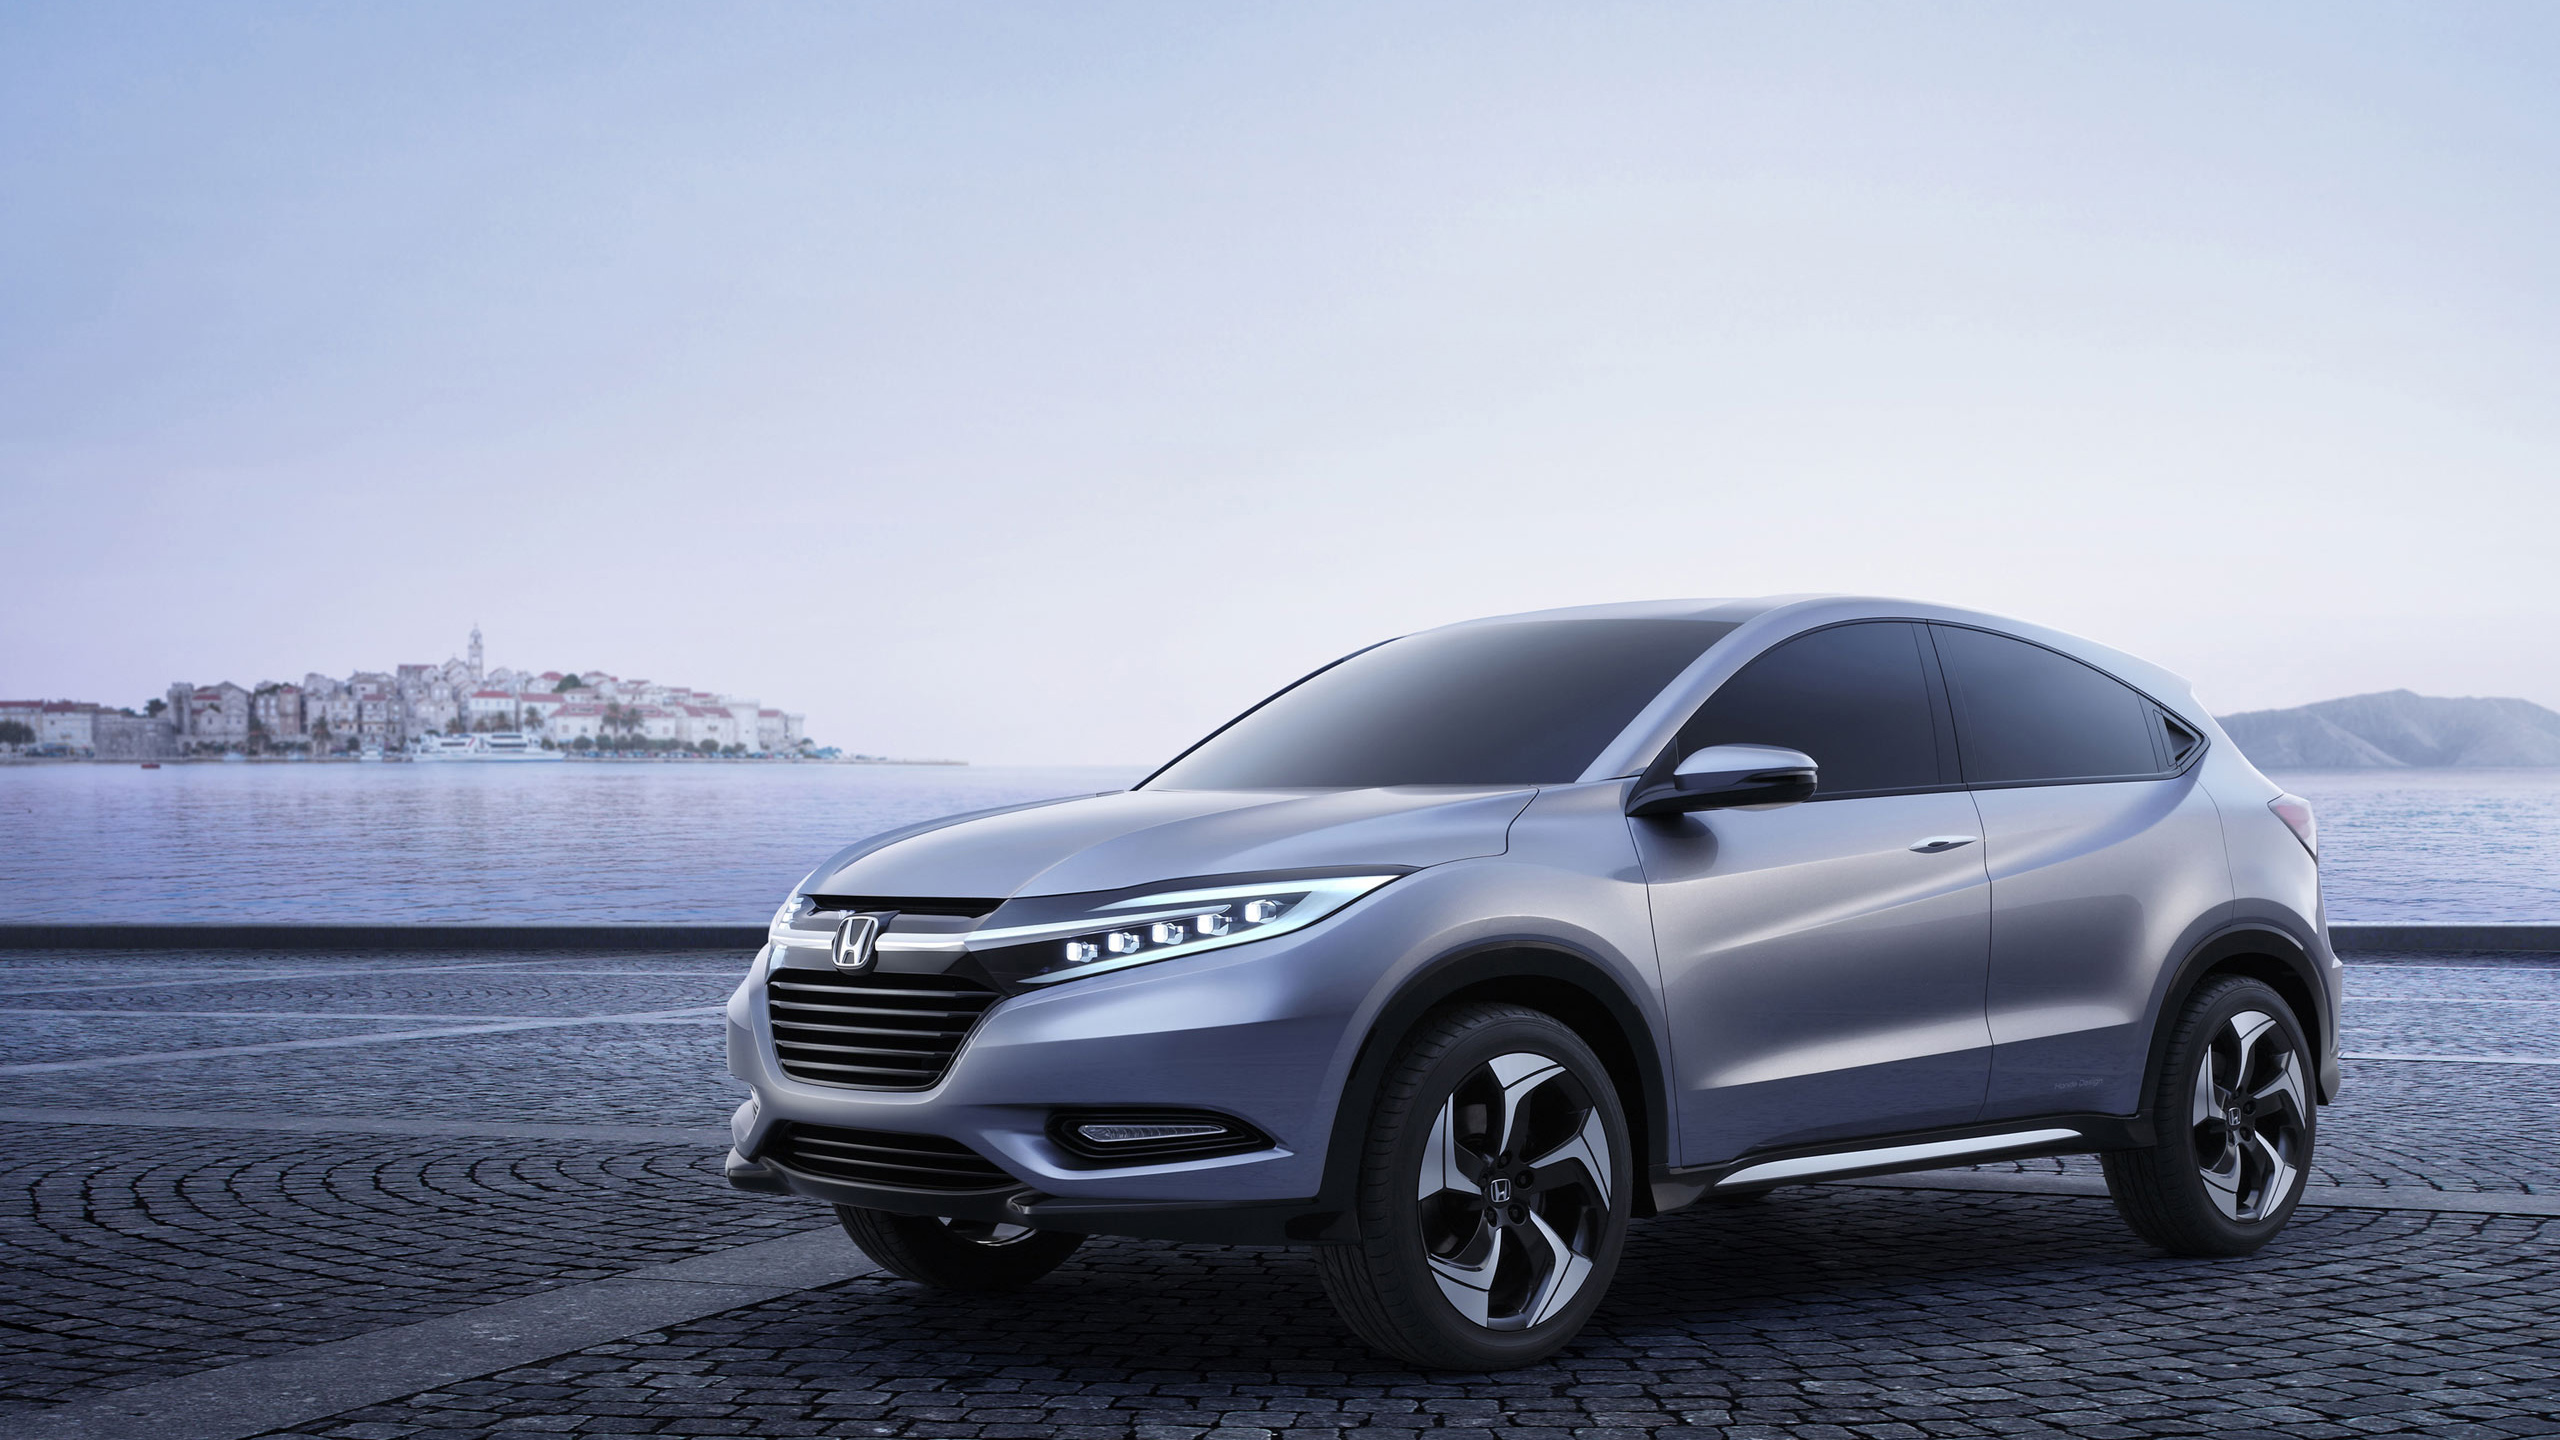 Honda Urban SUV Concept Wallpaper